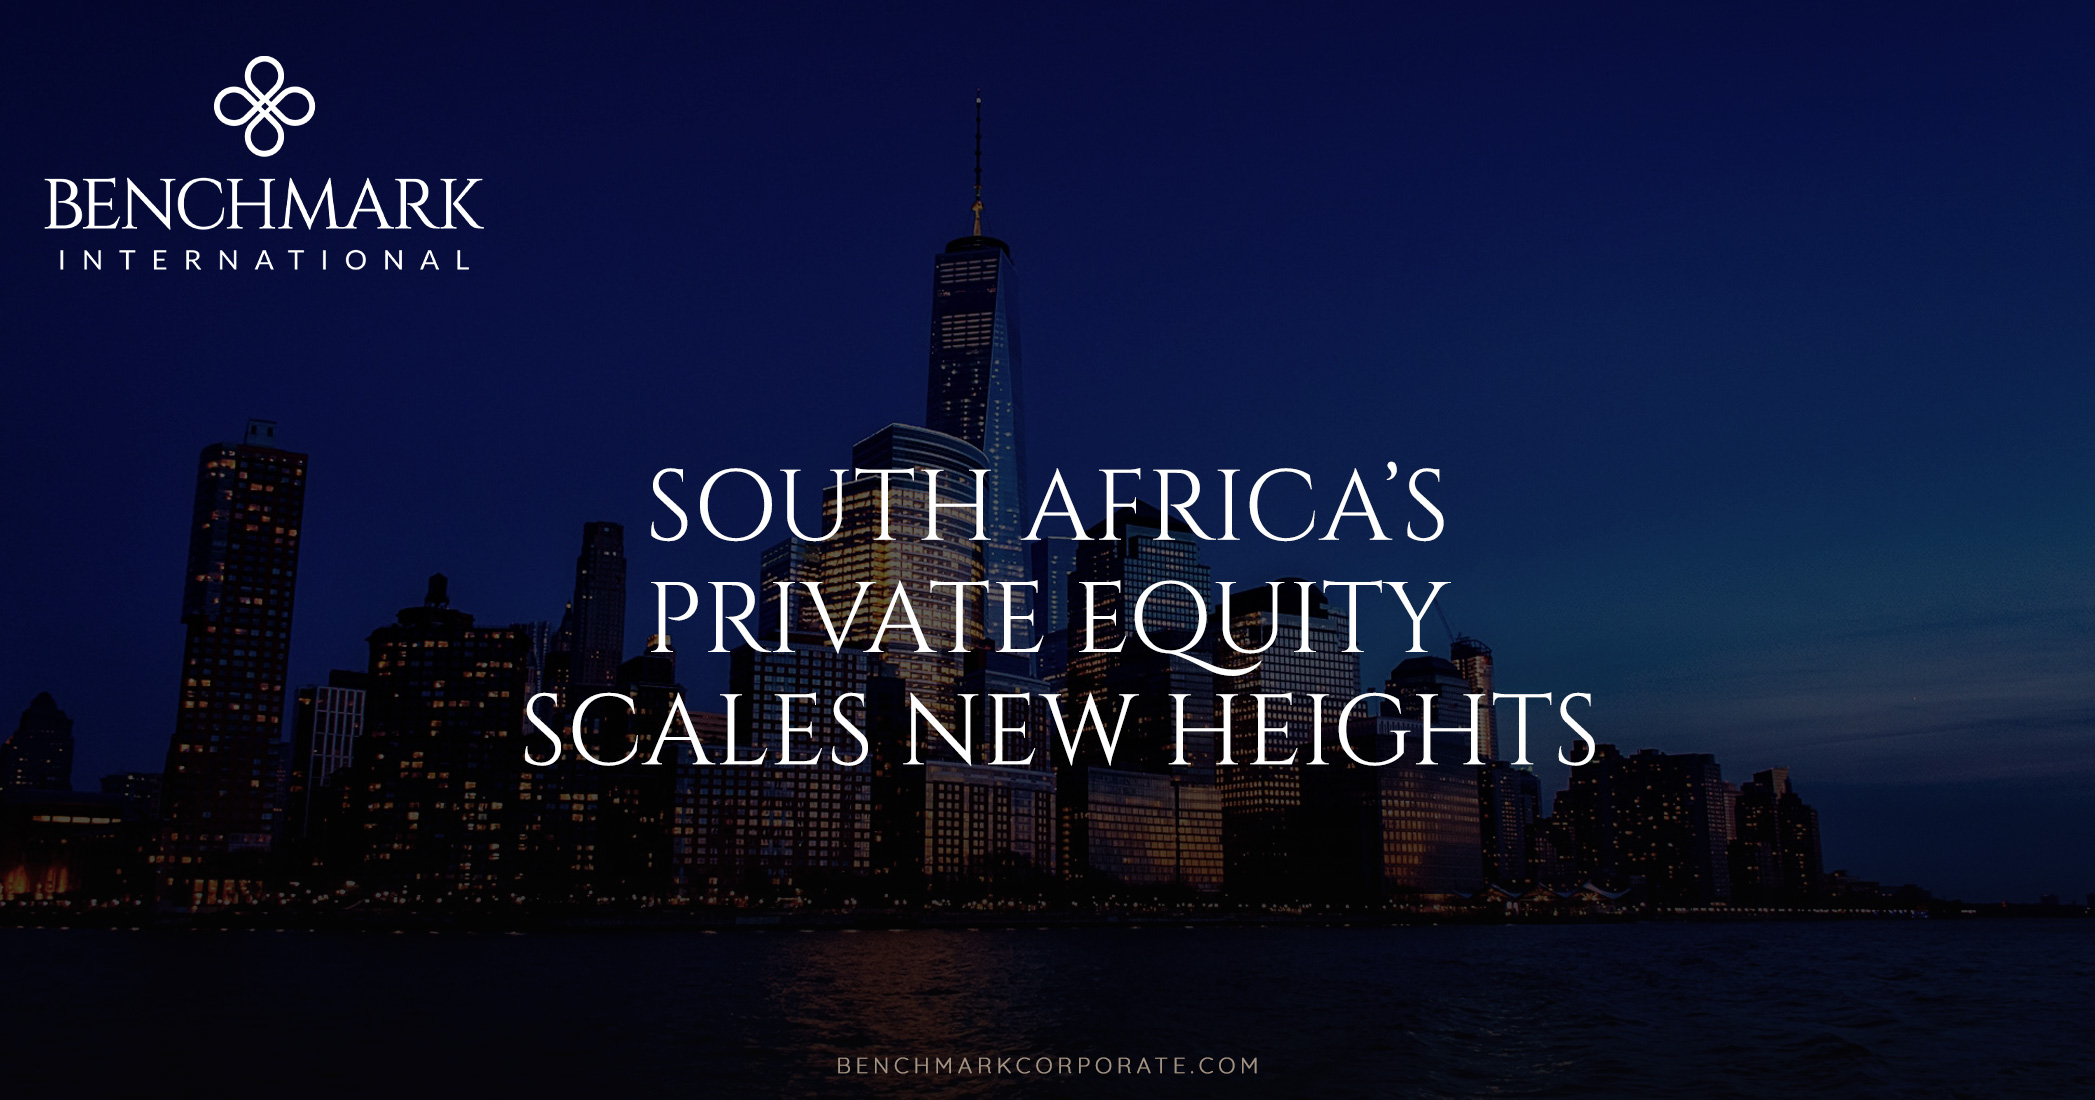 South Africa's Private Equity Scales New Heights